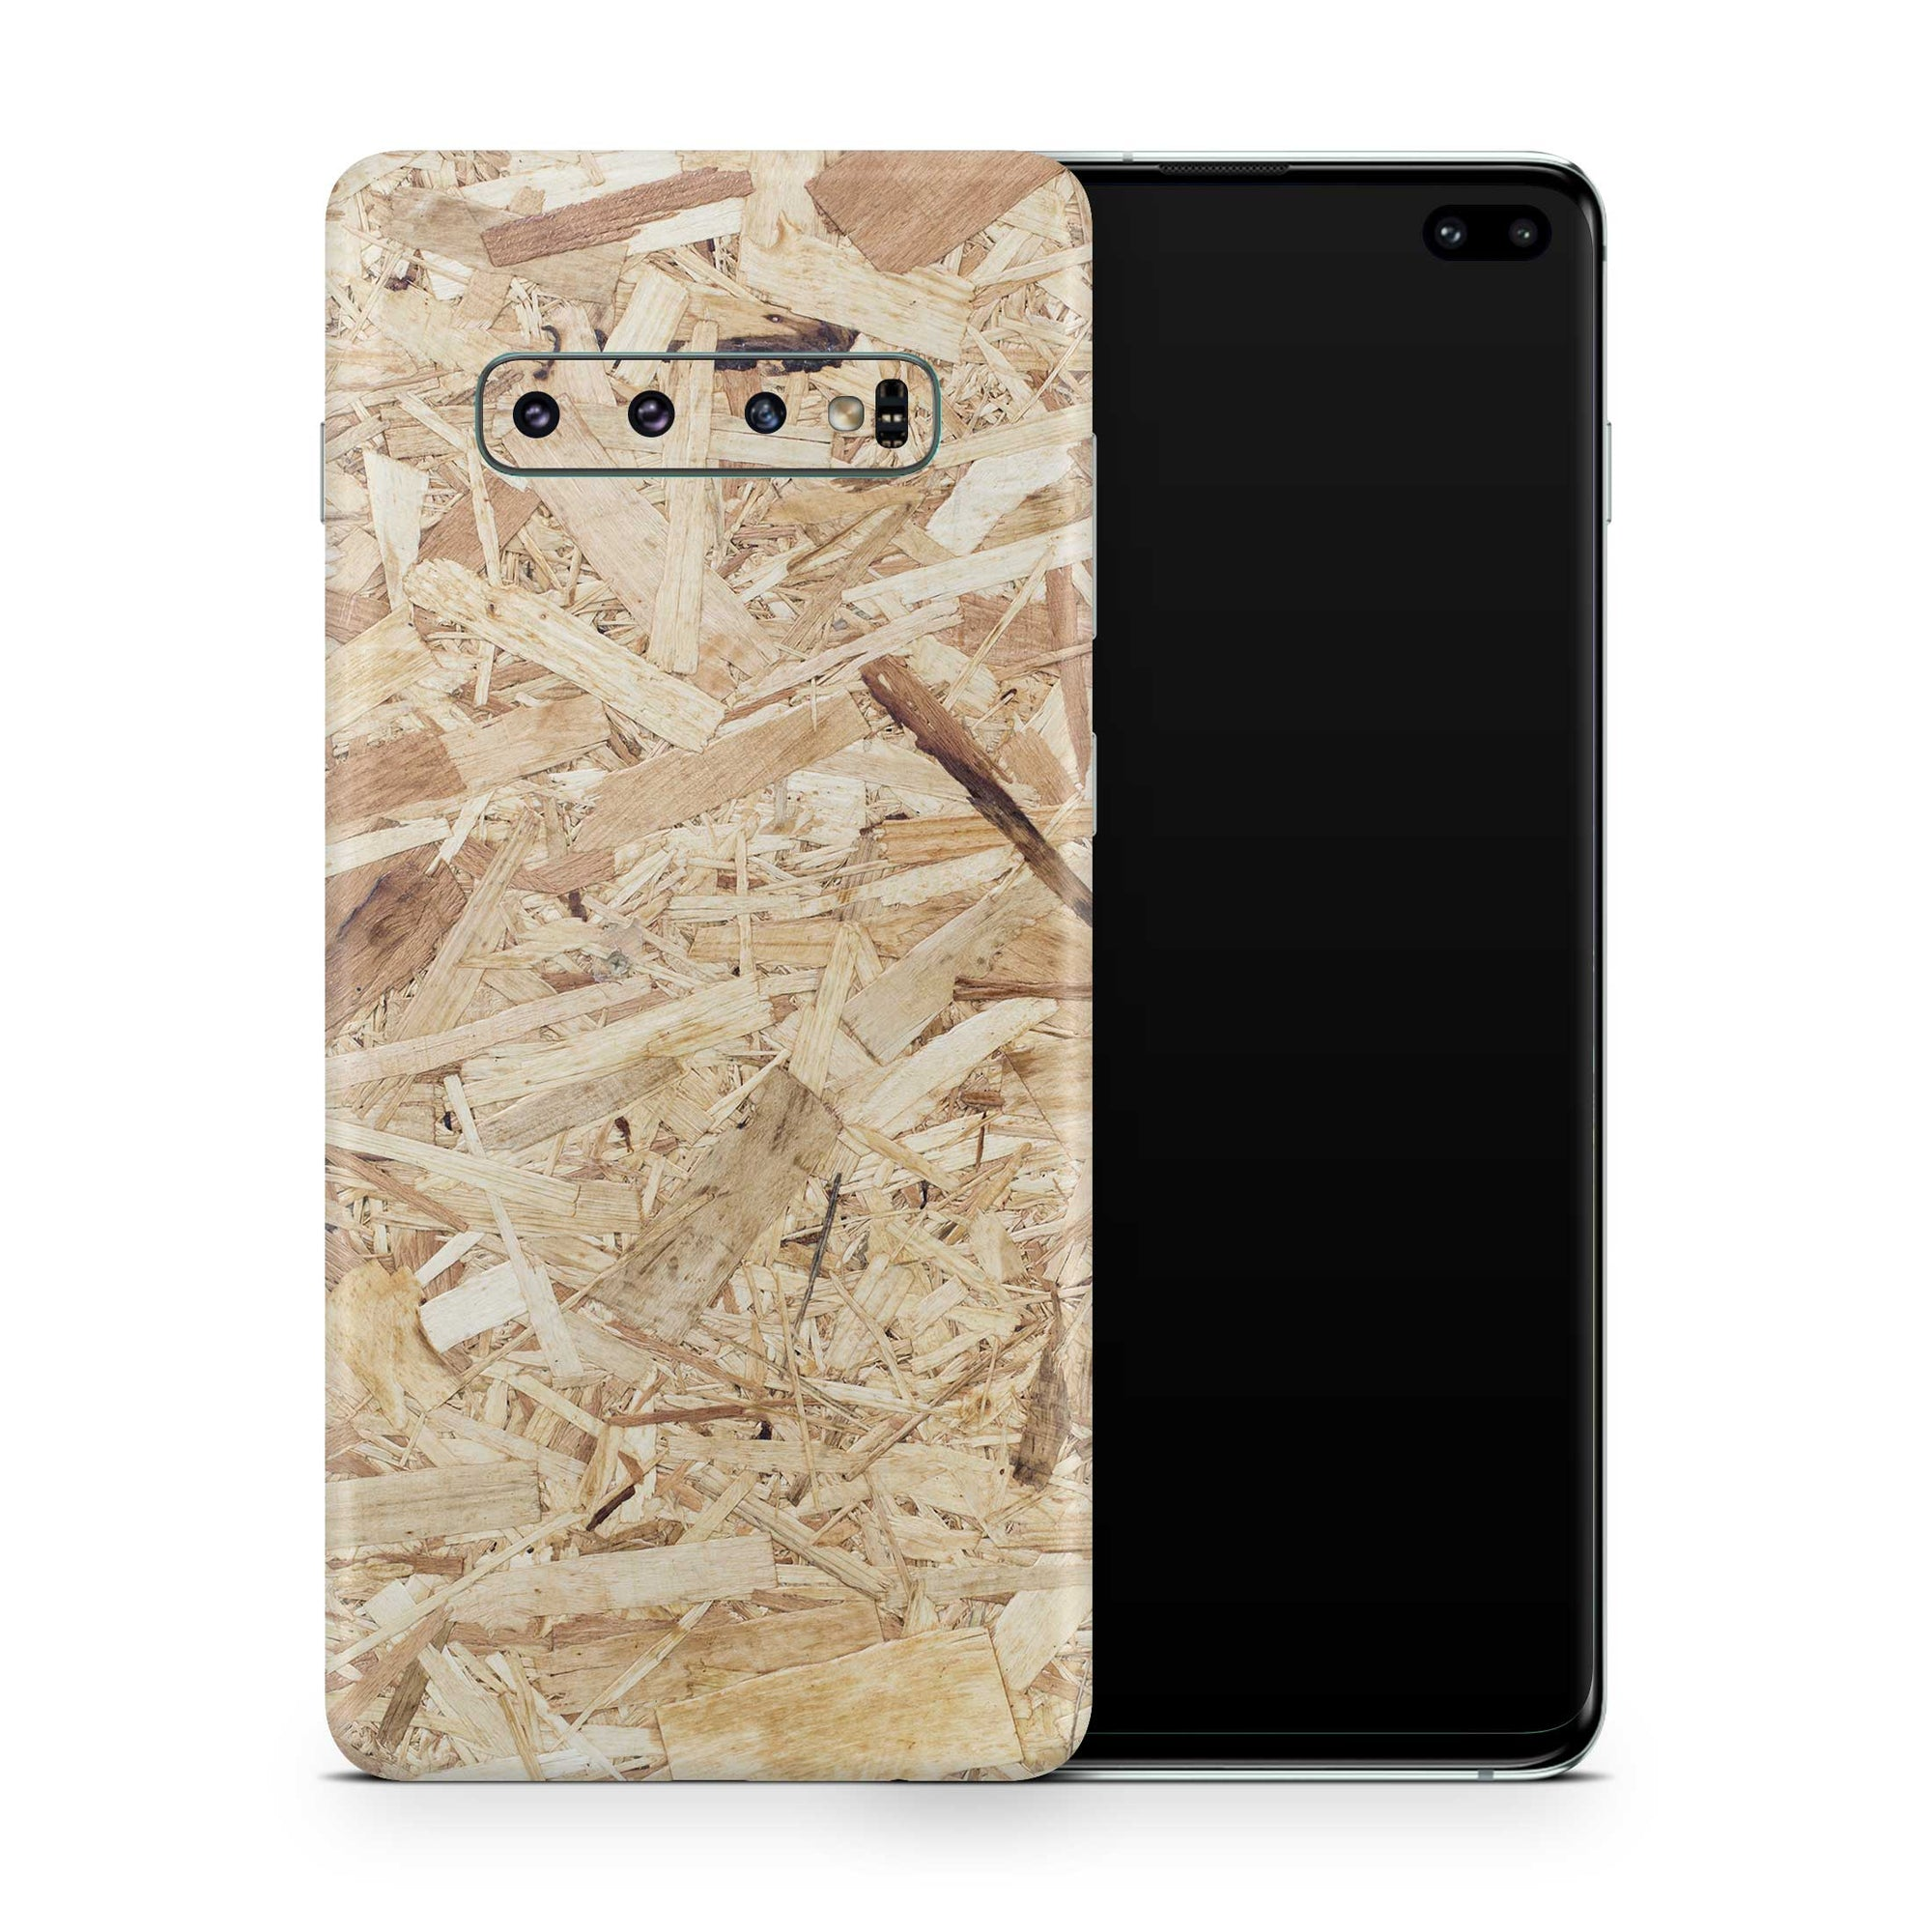 Plywood S10 Skin